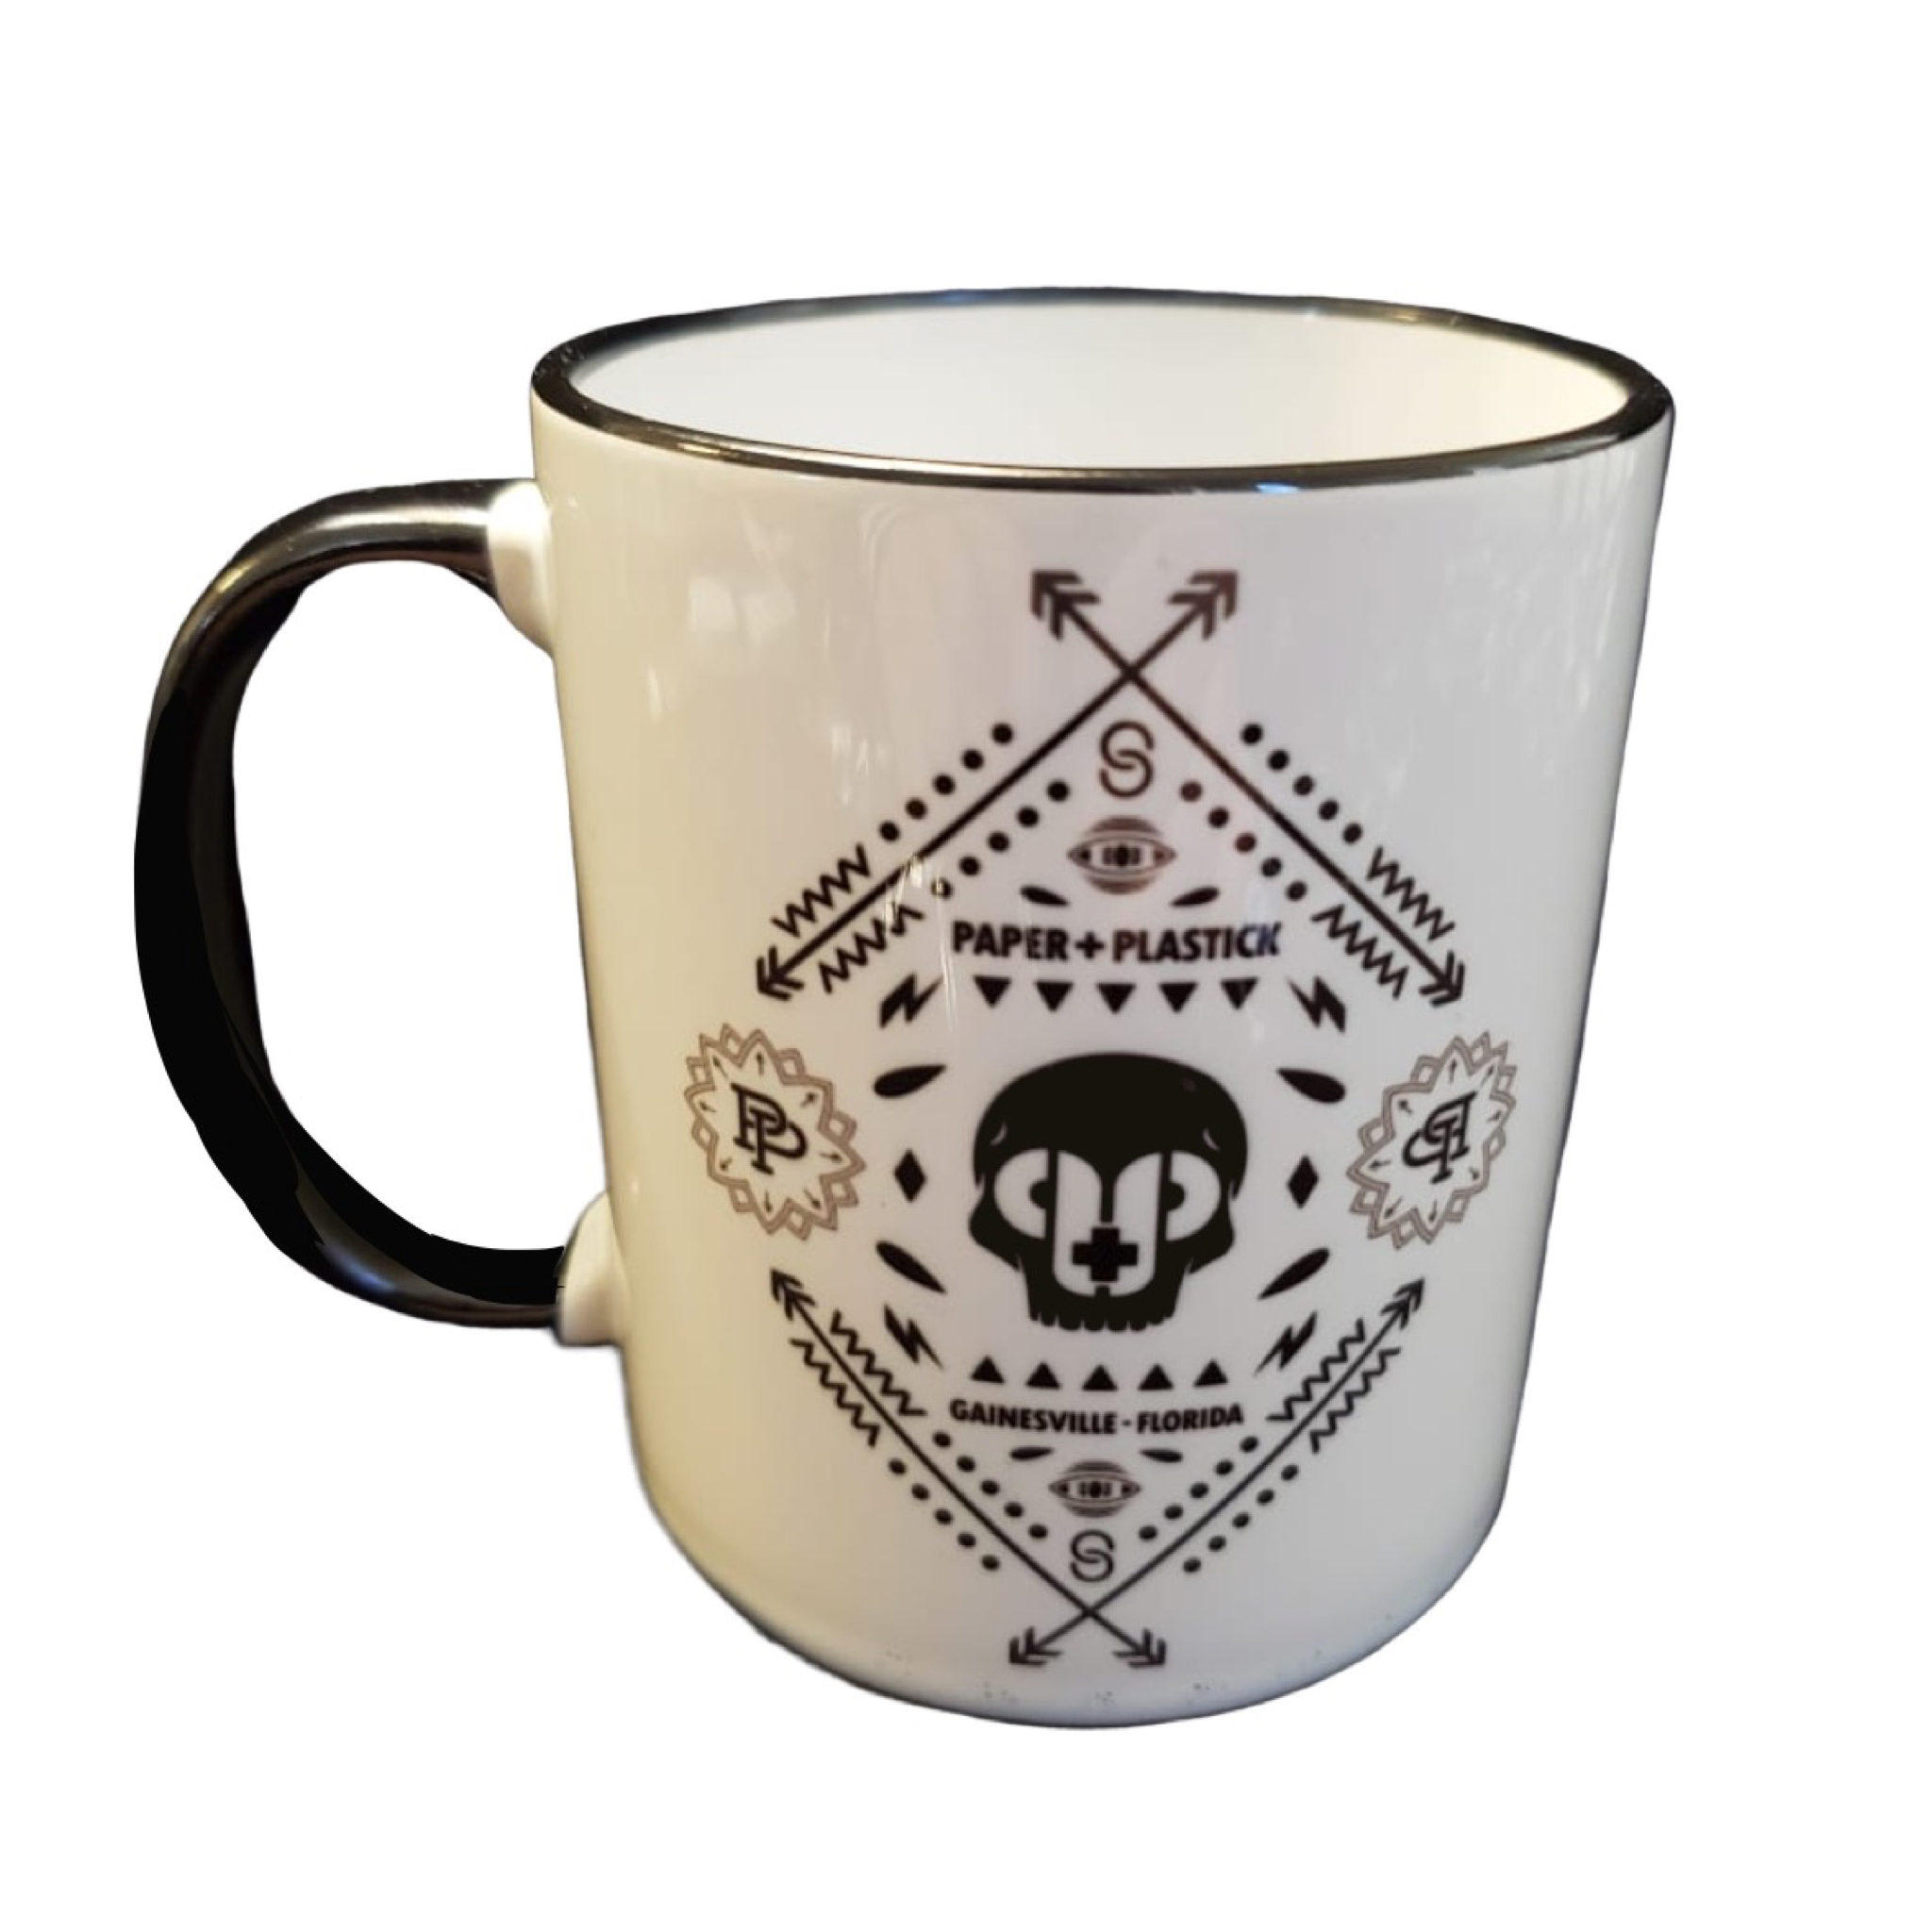 Limited Camp P+P Logo Ceramic Mug